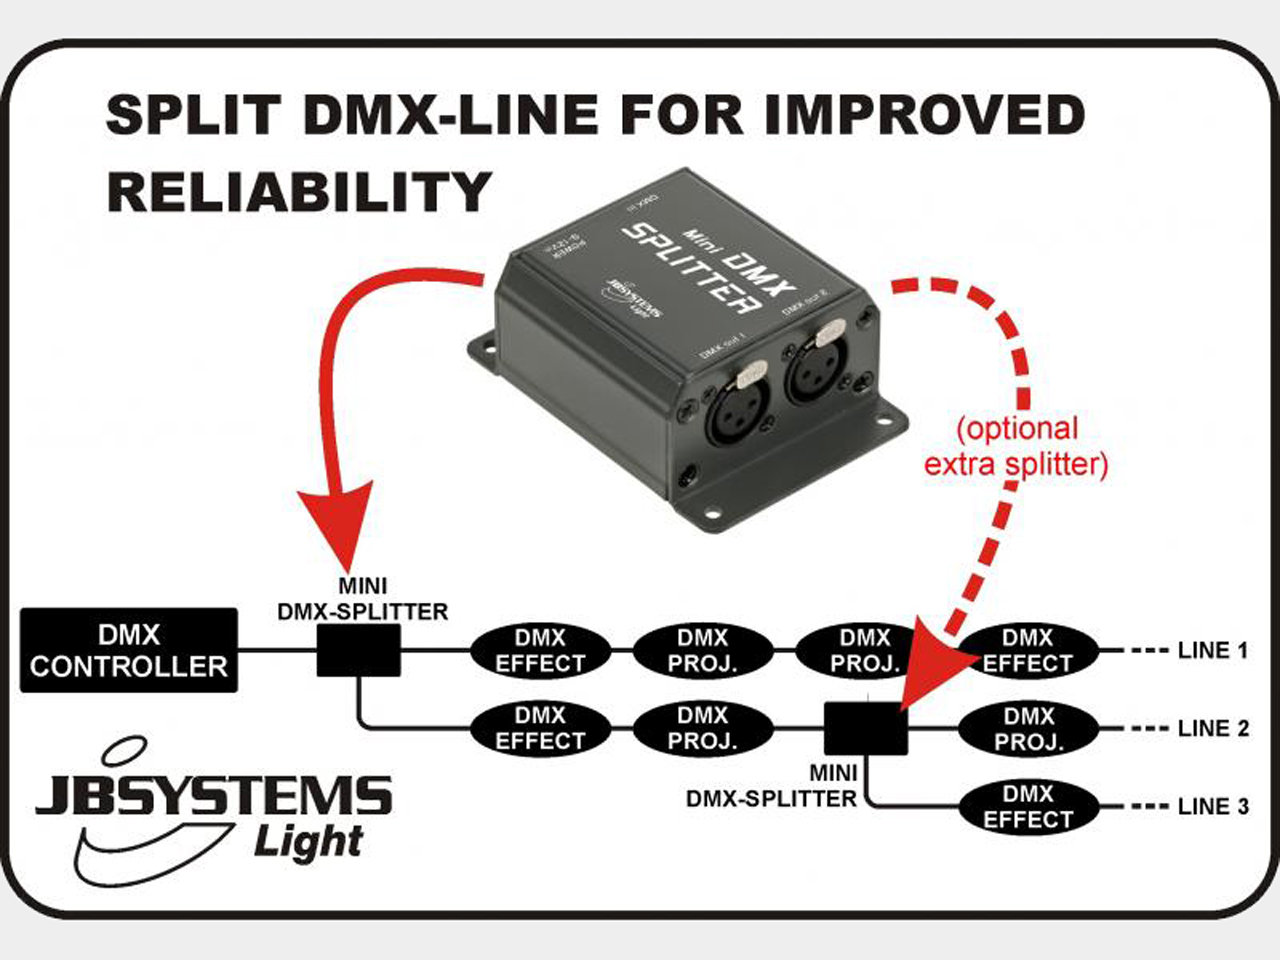 JB Systems Mini DMX Splitter DMX